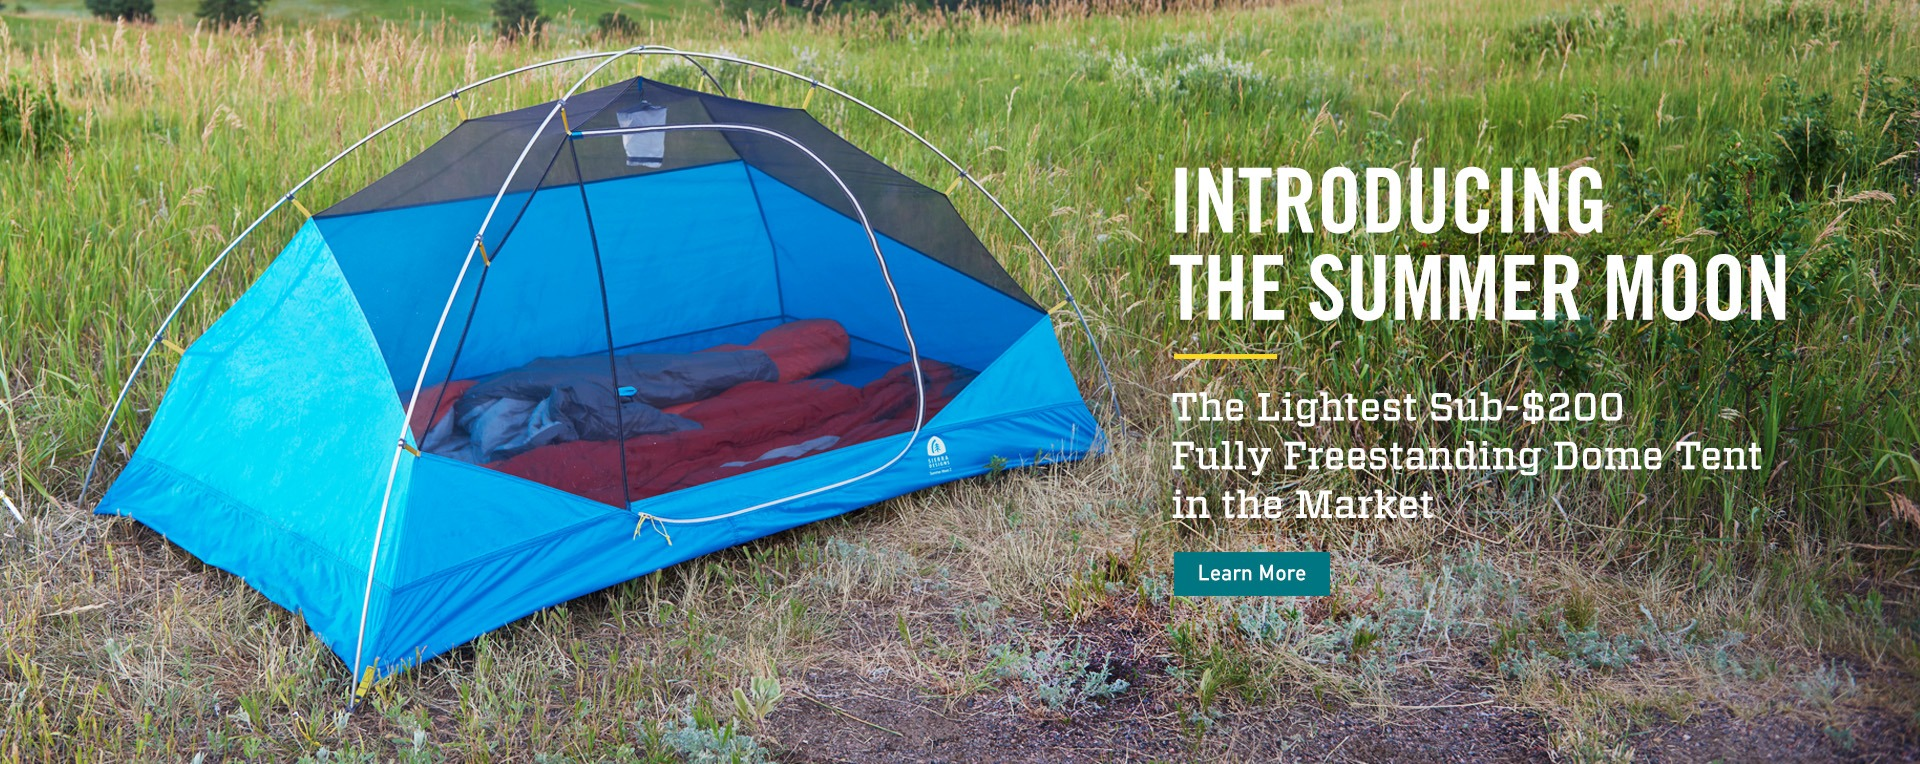 New Summer Moon Tent